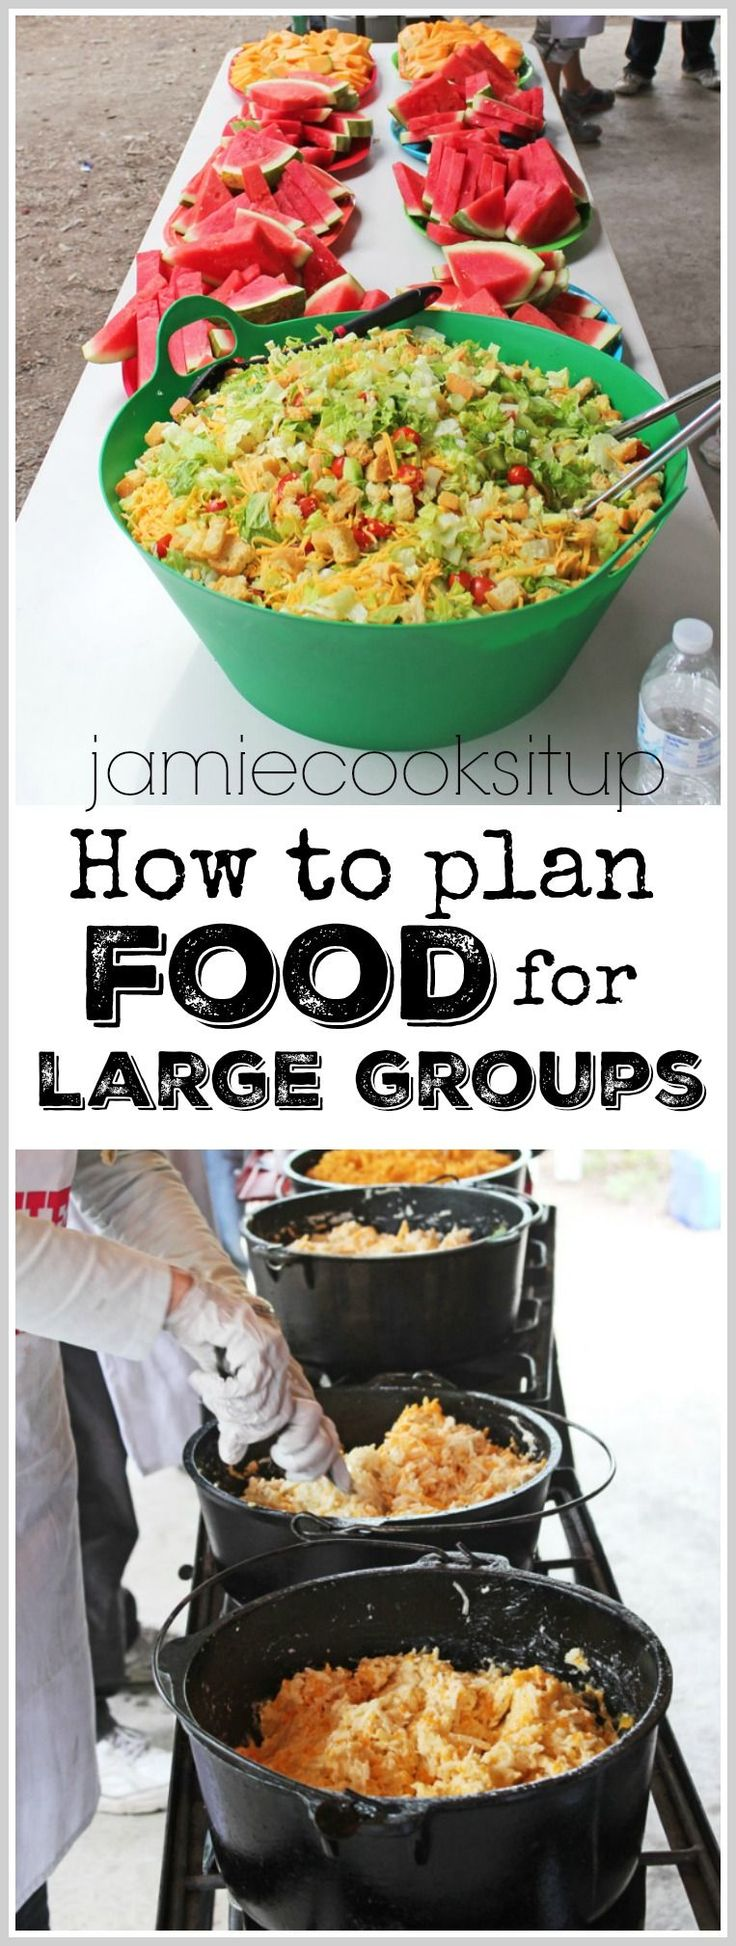 How to plan food for Girls Camp, Youth Conference, Family Reunions or other Large Groups